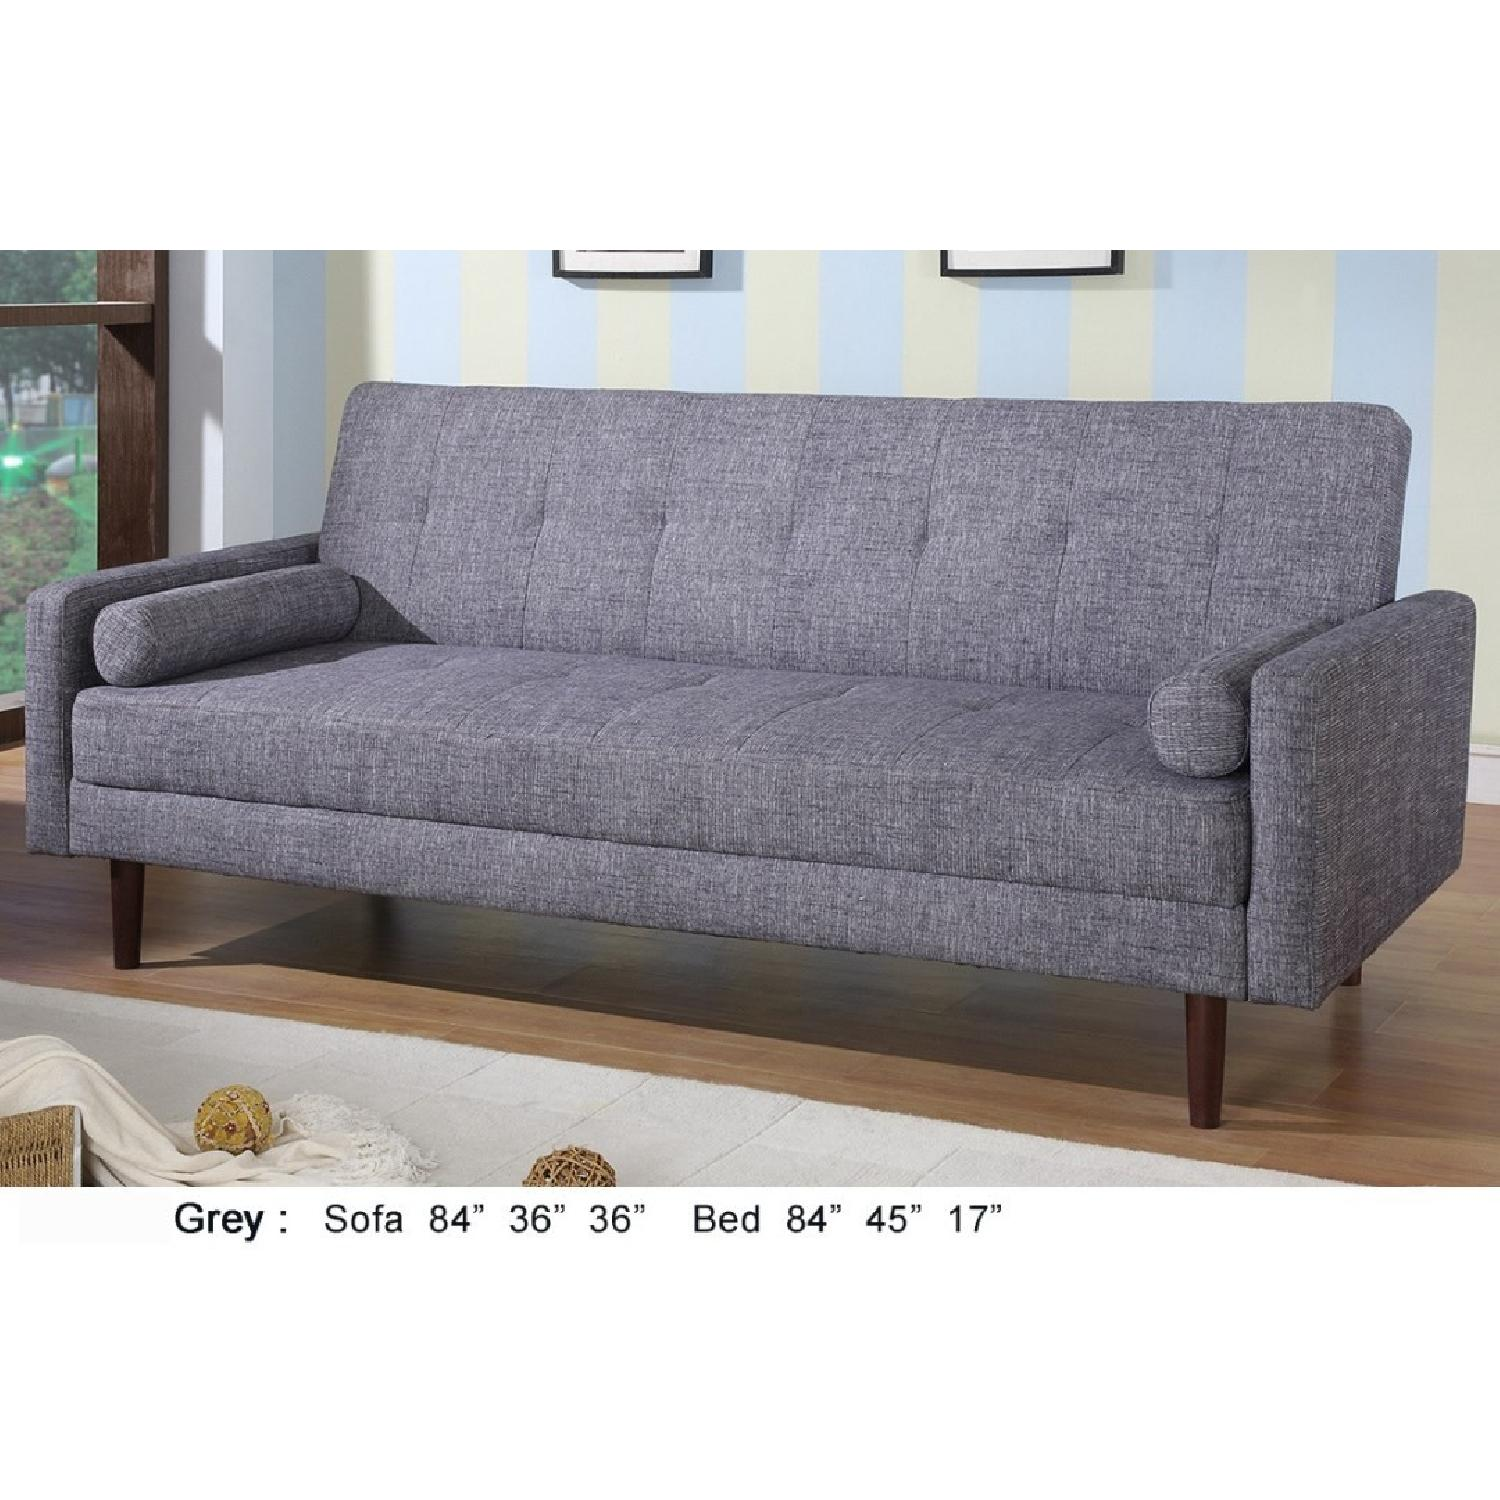 Modern Grey Linen Fabric Sofabed - image-2